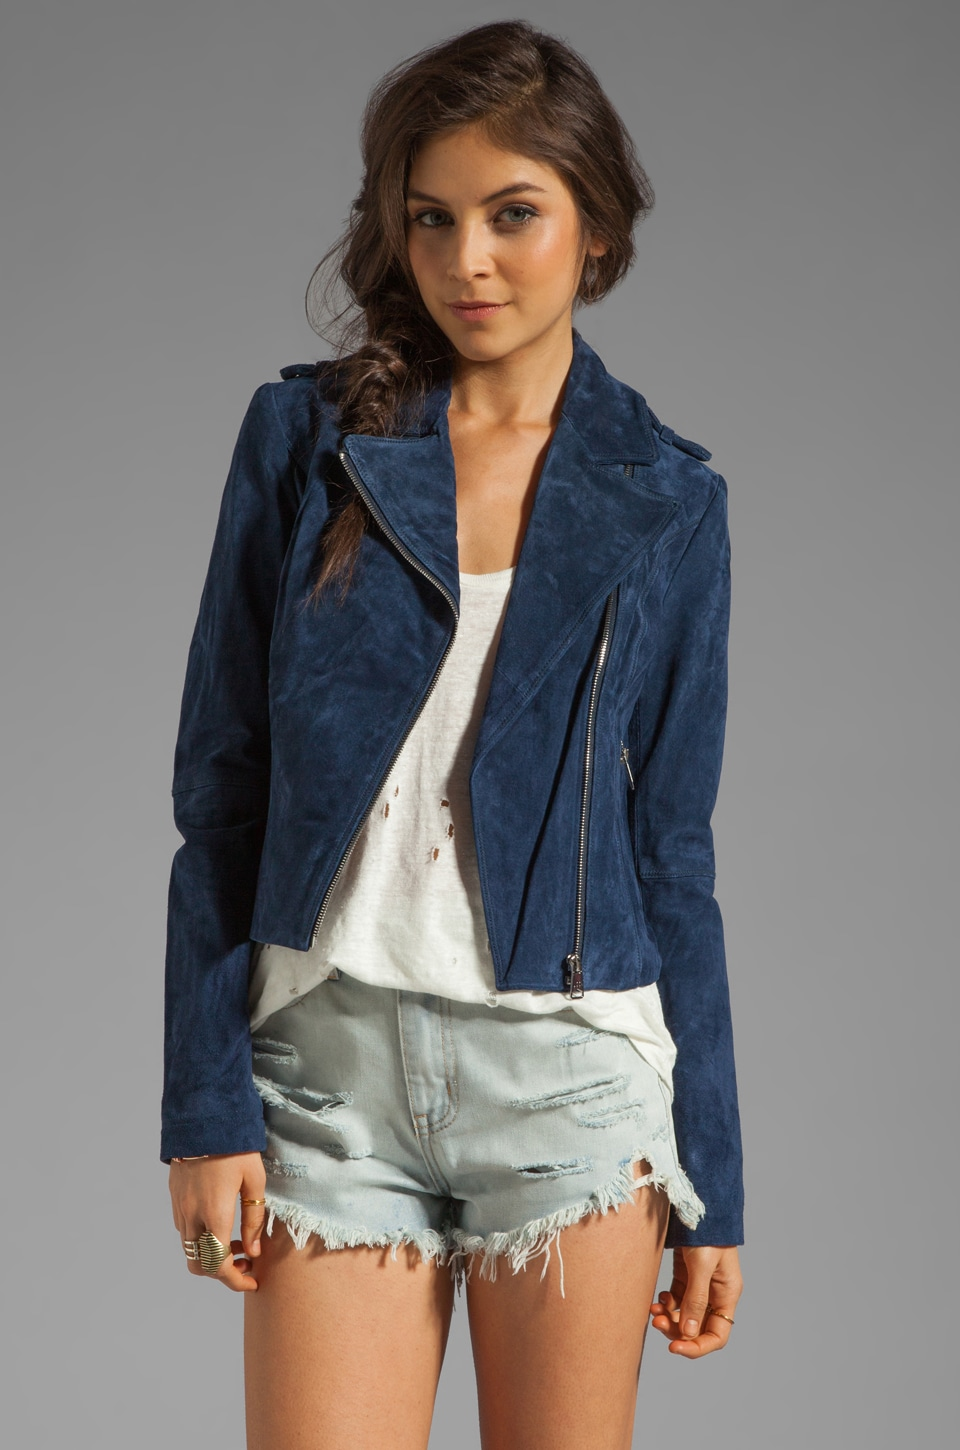 Soia & Kyo Lizzie Suede Leather Jacket in Blue